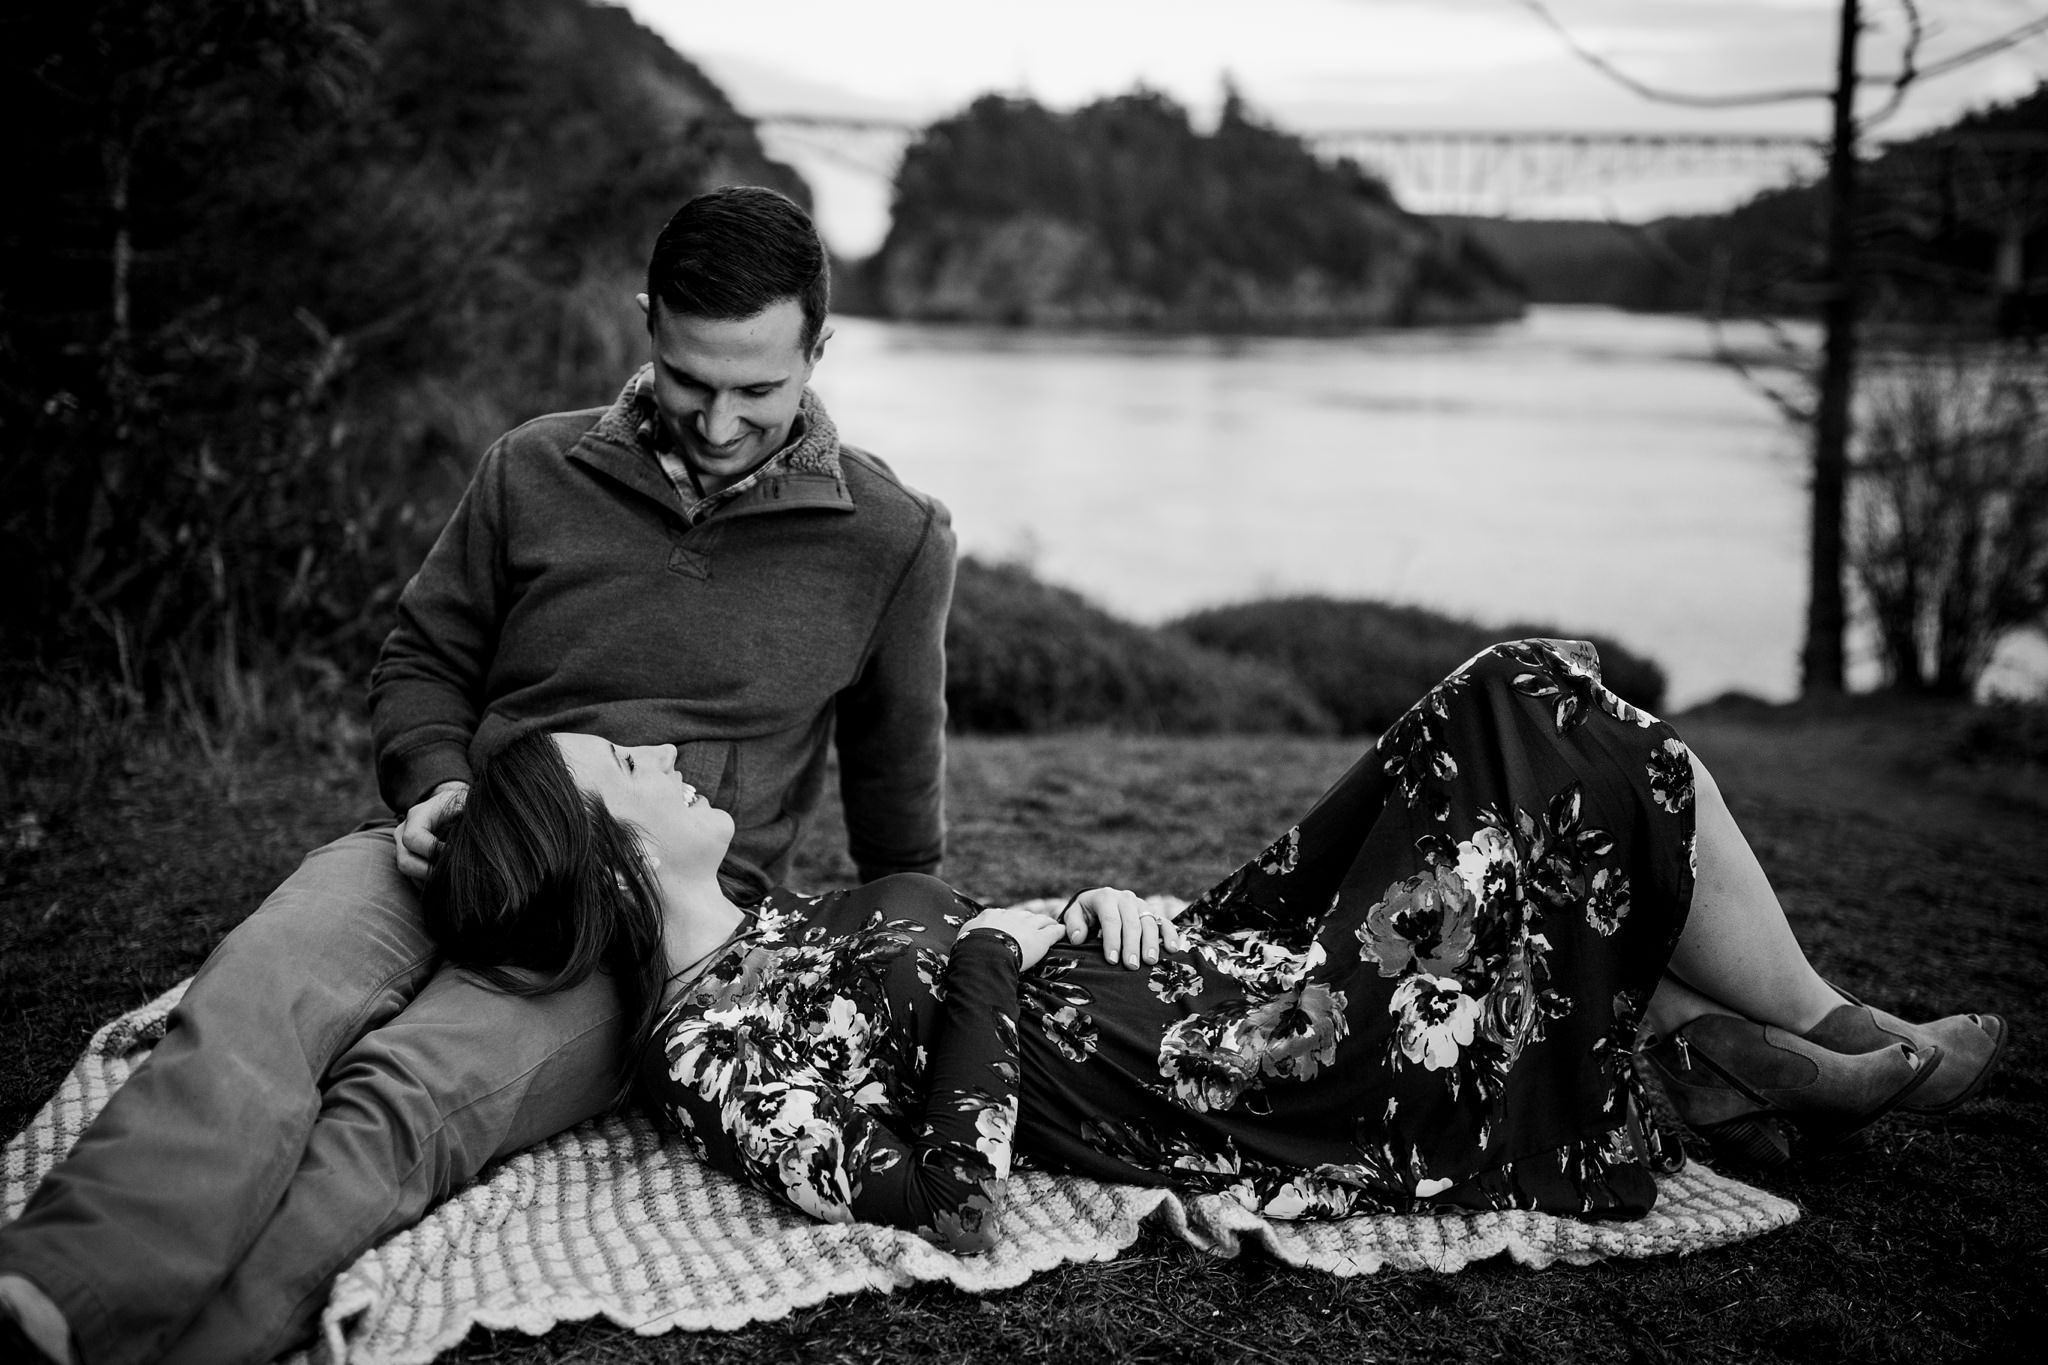 Whidbey-Island-Family-Photographer-Kara-Chappell-Photography_1770.jpg